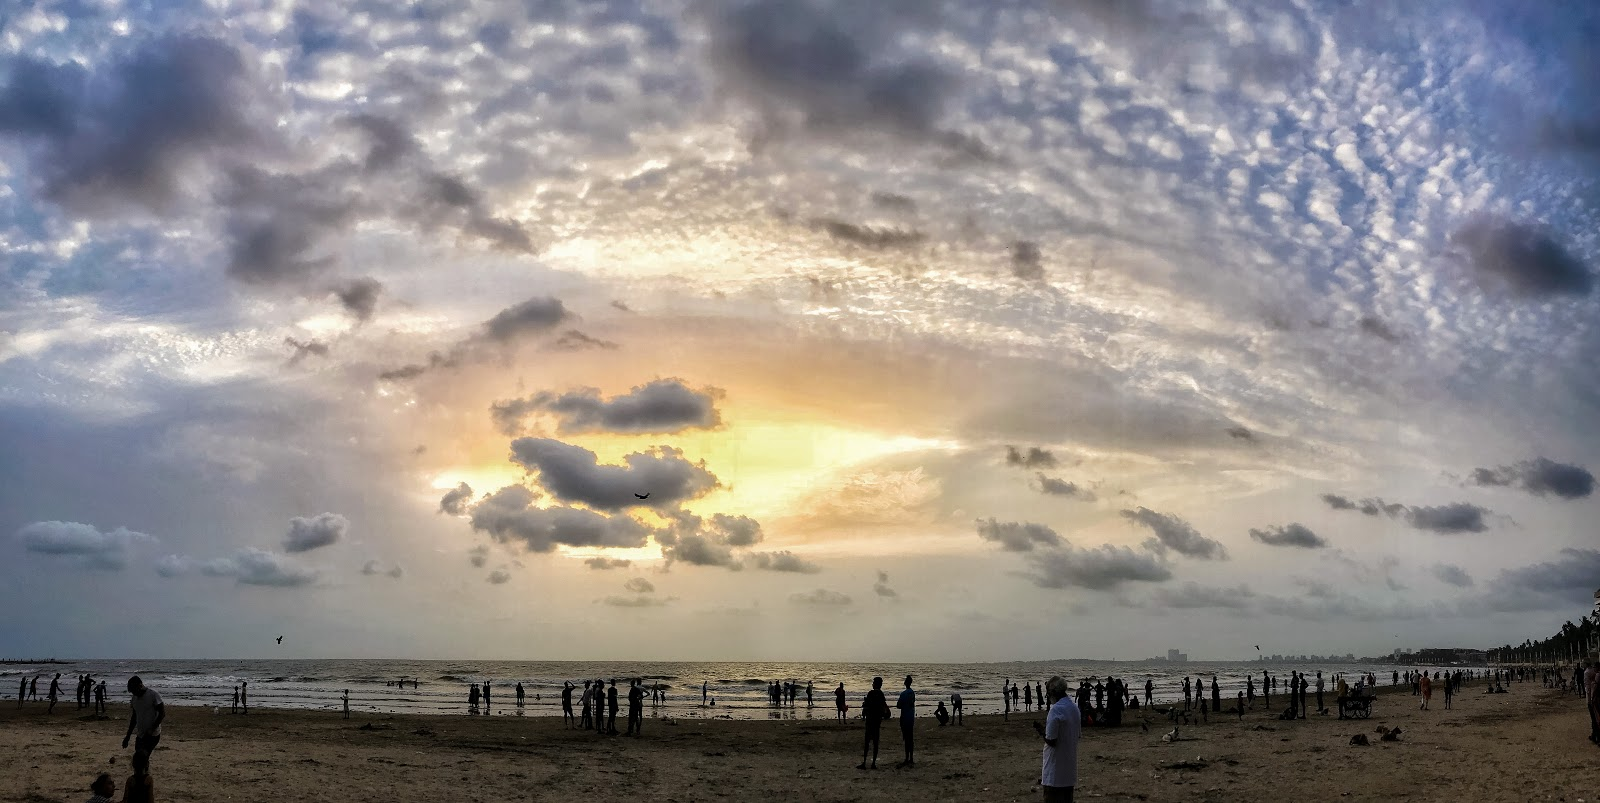 Sunset, Juhu Beach, Mumbai